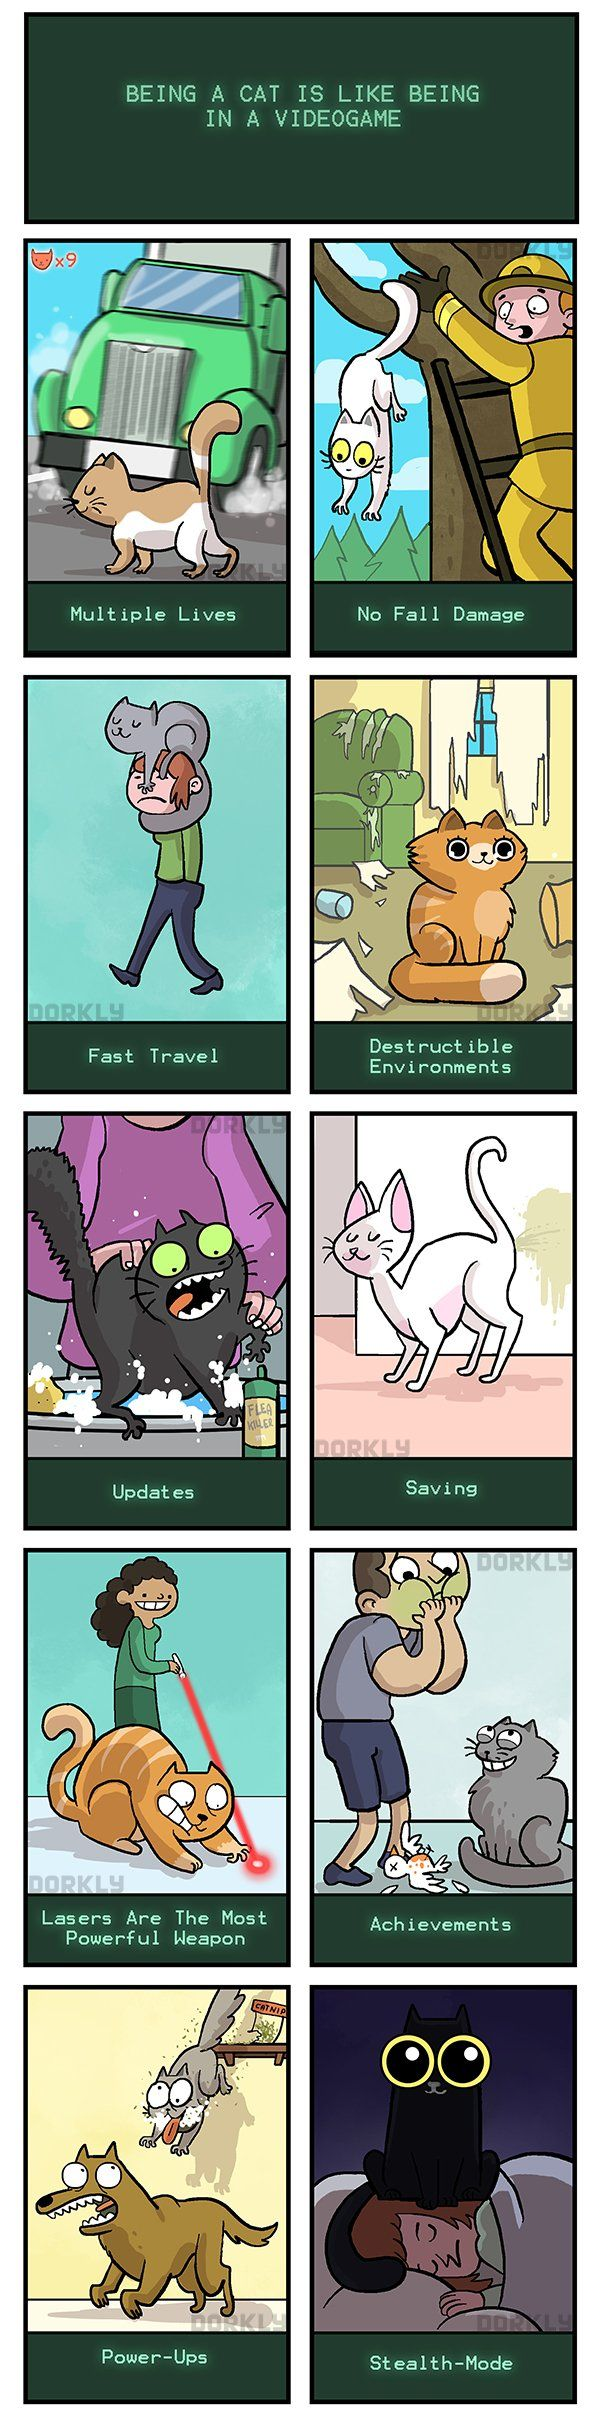 Being a cat is like being in a video game XD